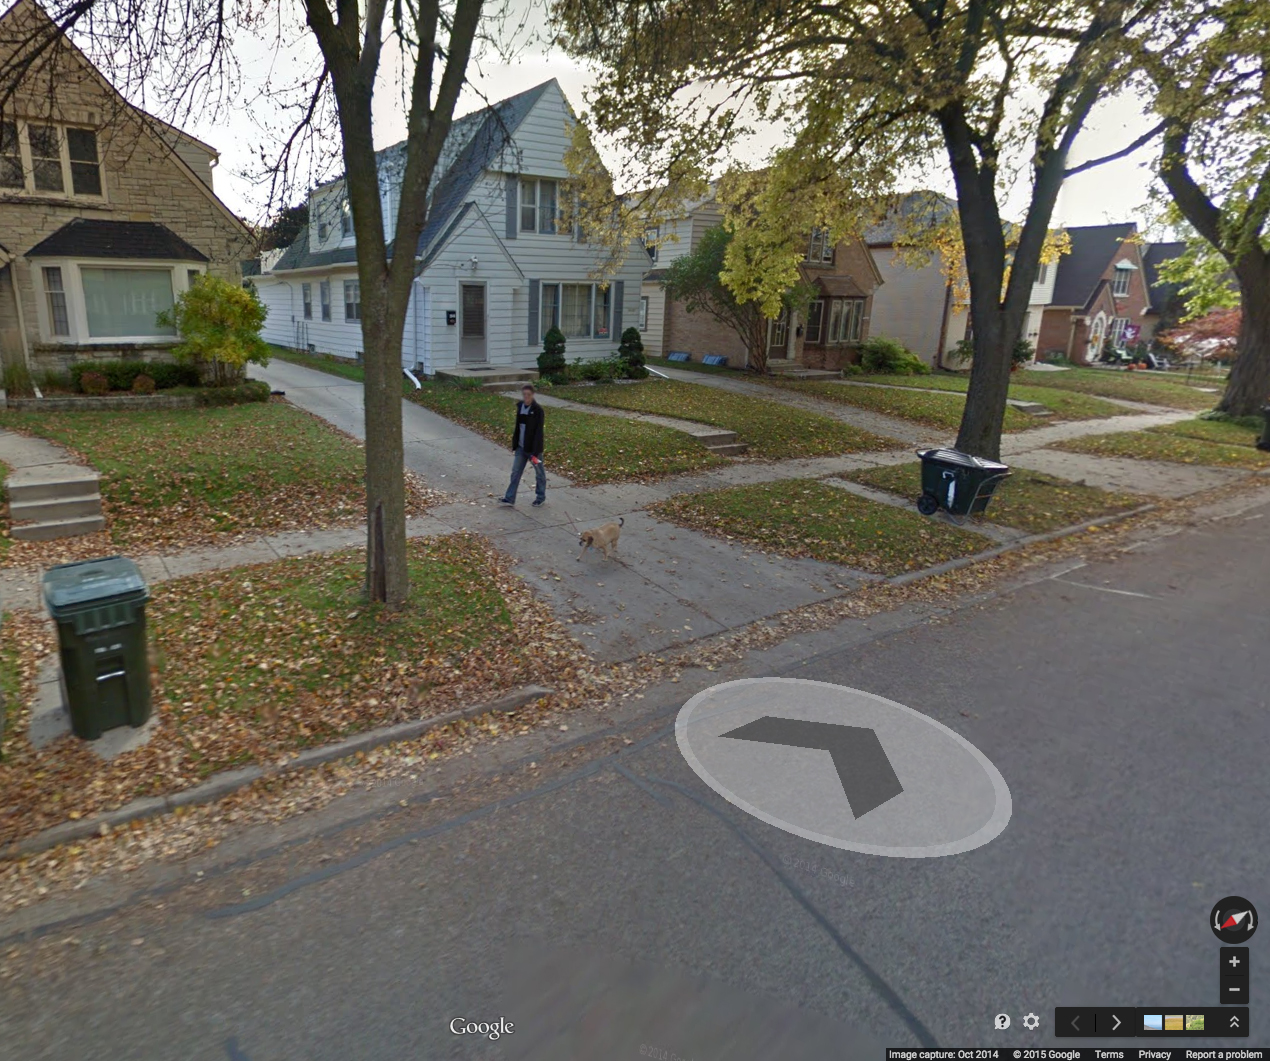 Matt on Google Maps